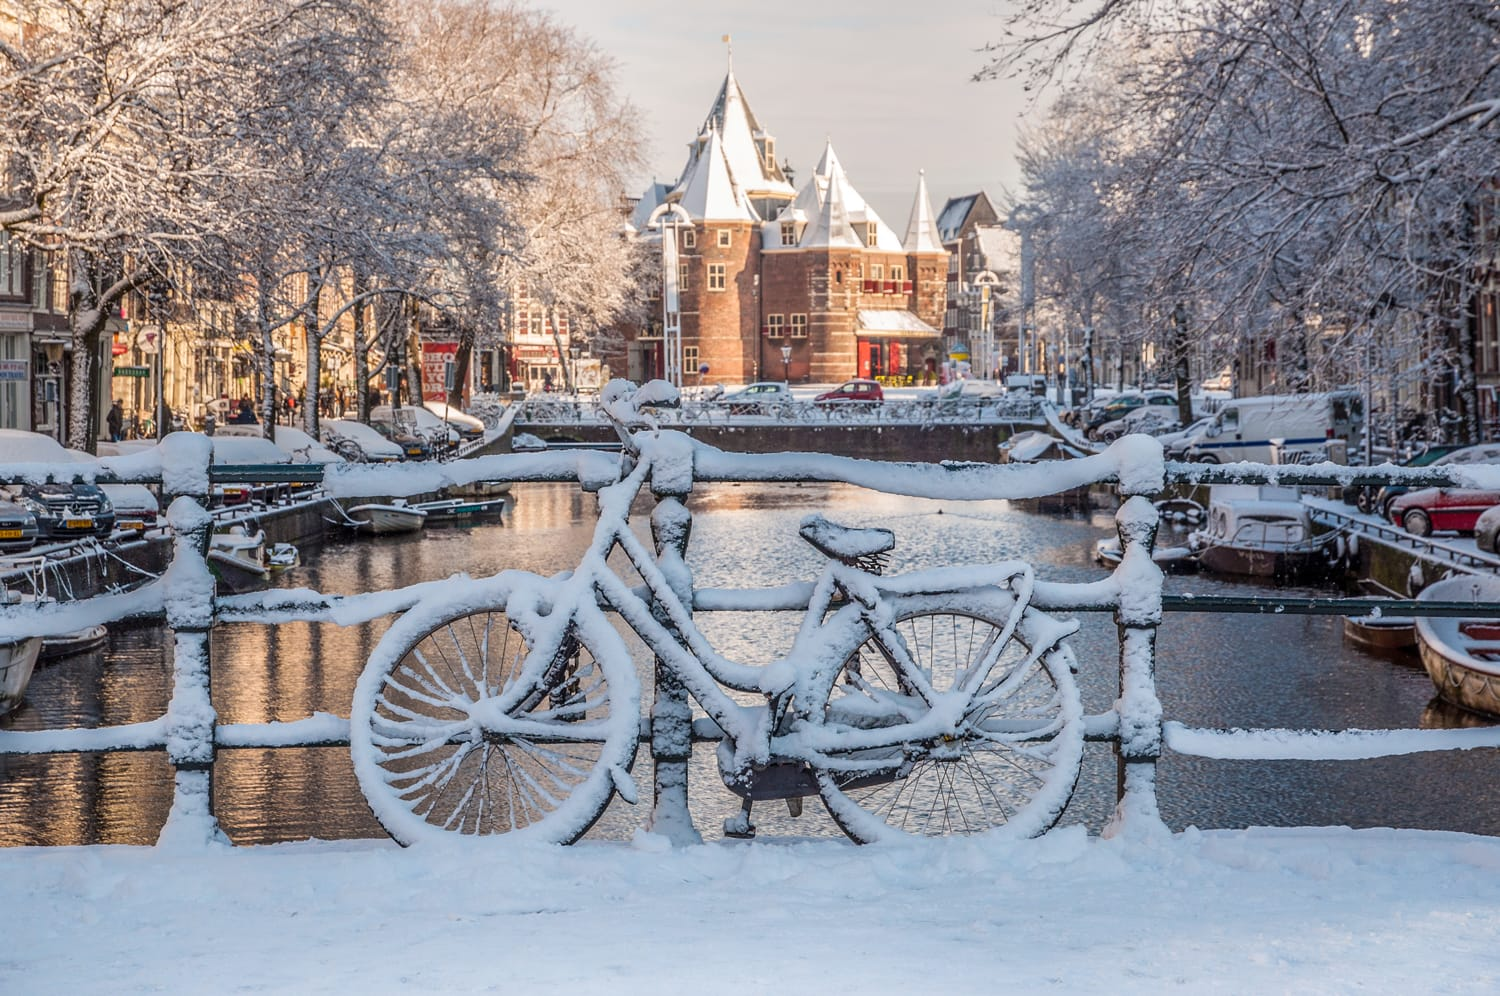 Bicycles under the Snow, view on Nieuwmarkt, Amsterdam Channels